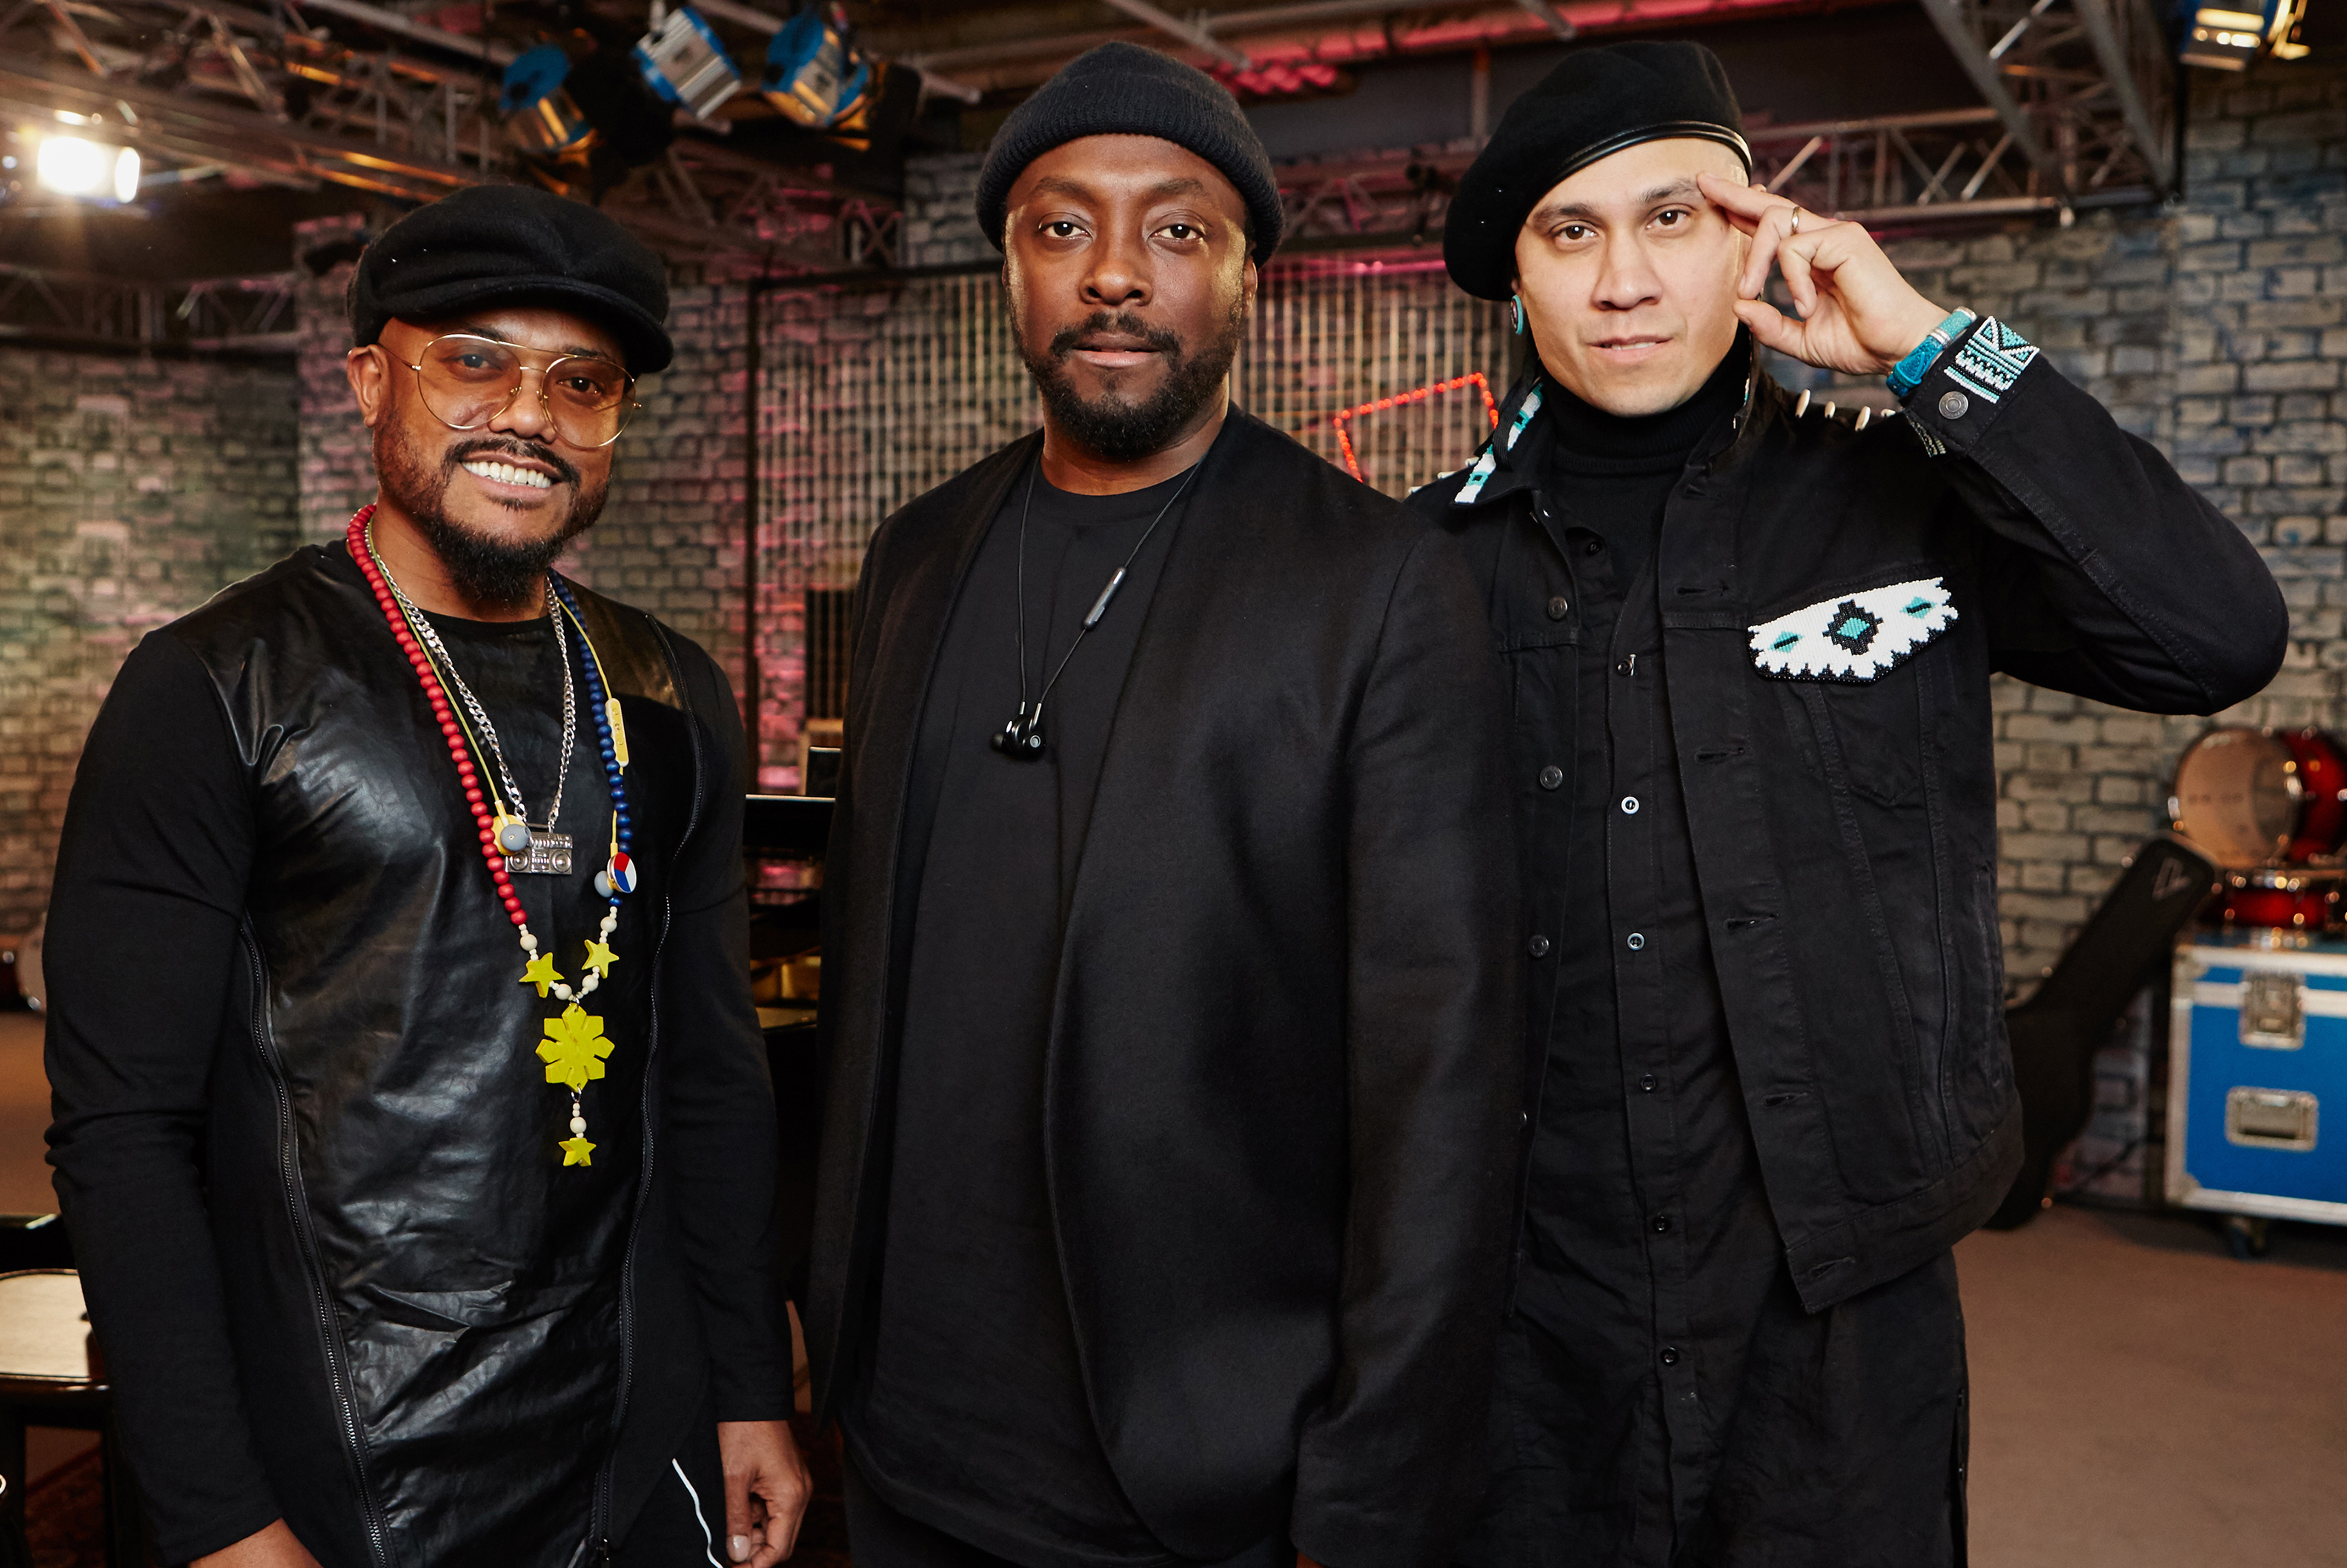 Black Eyed Peas to join Robbie Williams at BST